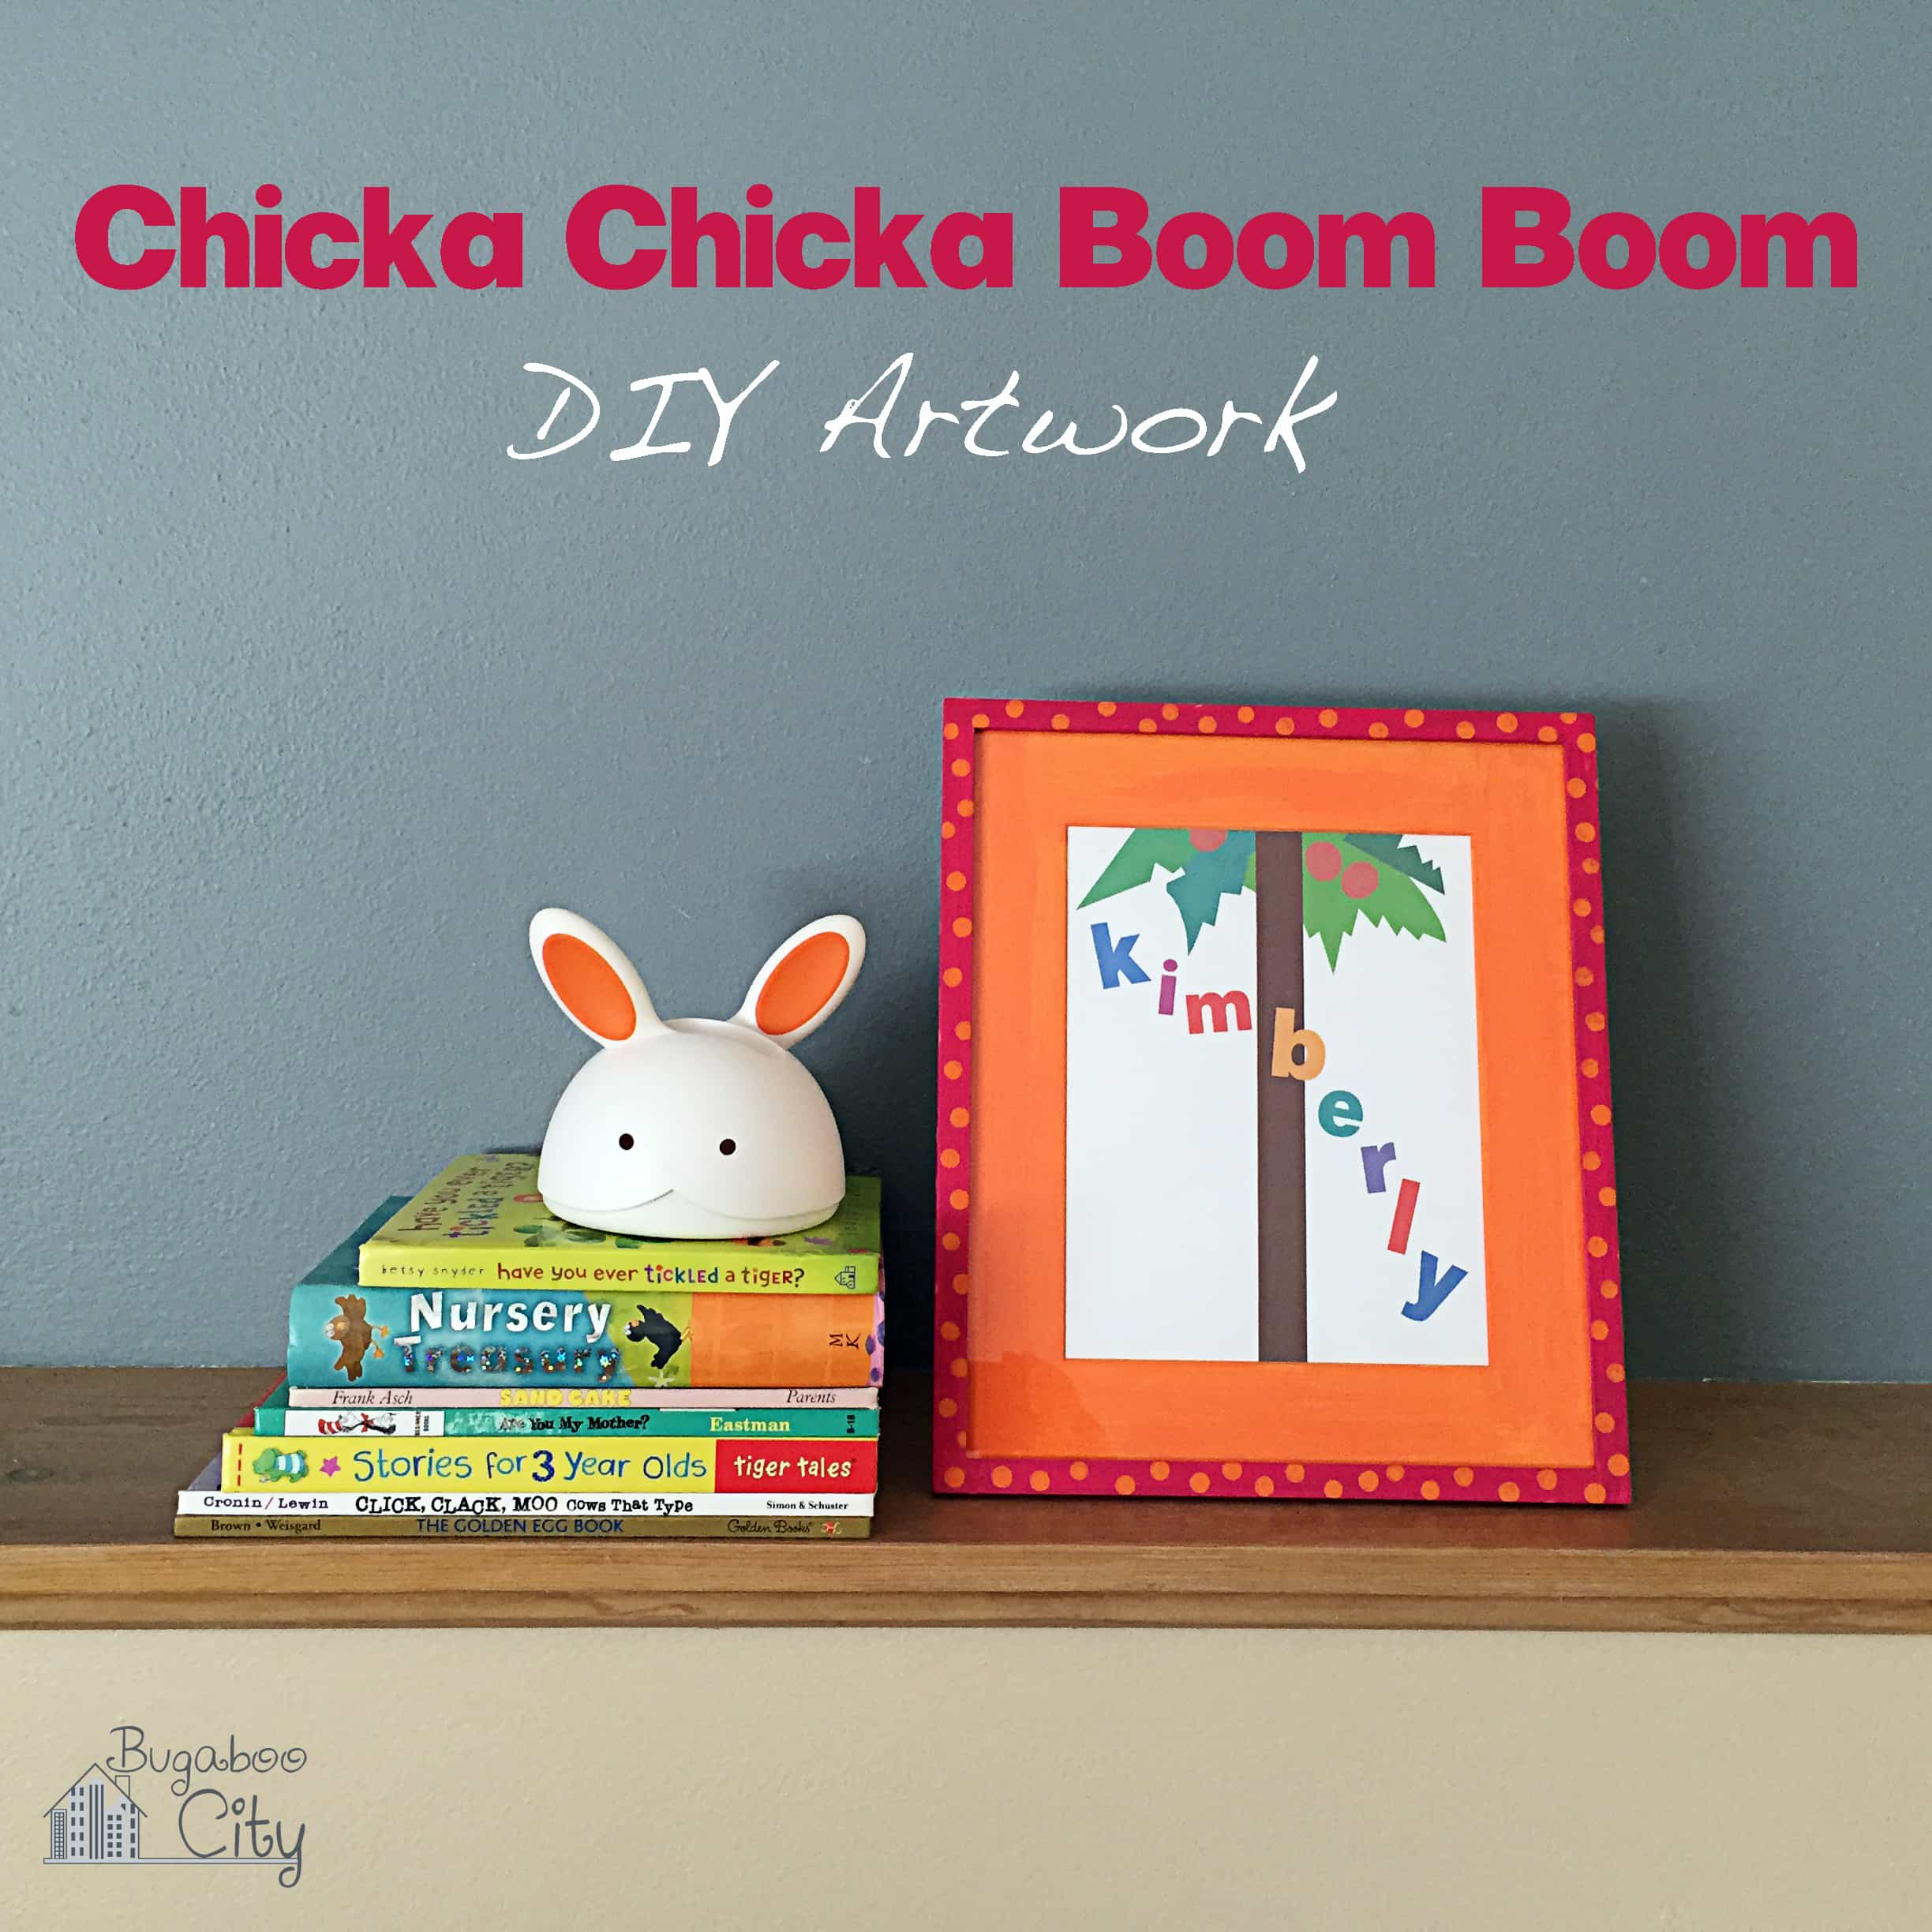 Chicca Chicca Boom Boom artwork in an orange and pink frame sits on a shelf with baby books and a bunny rabbit.